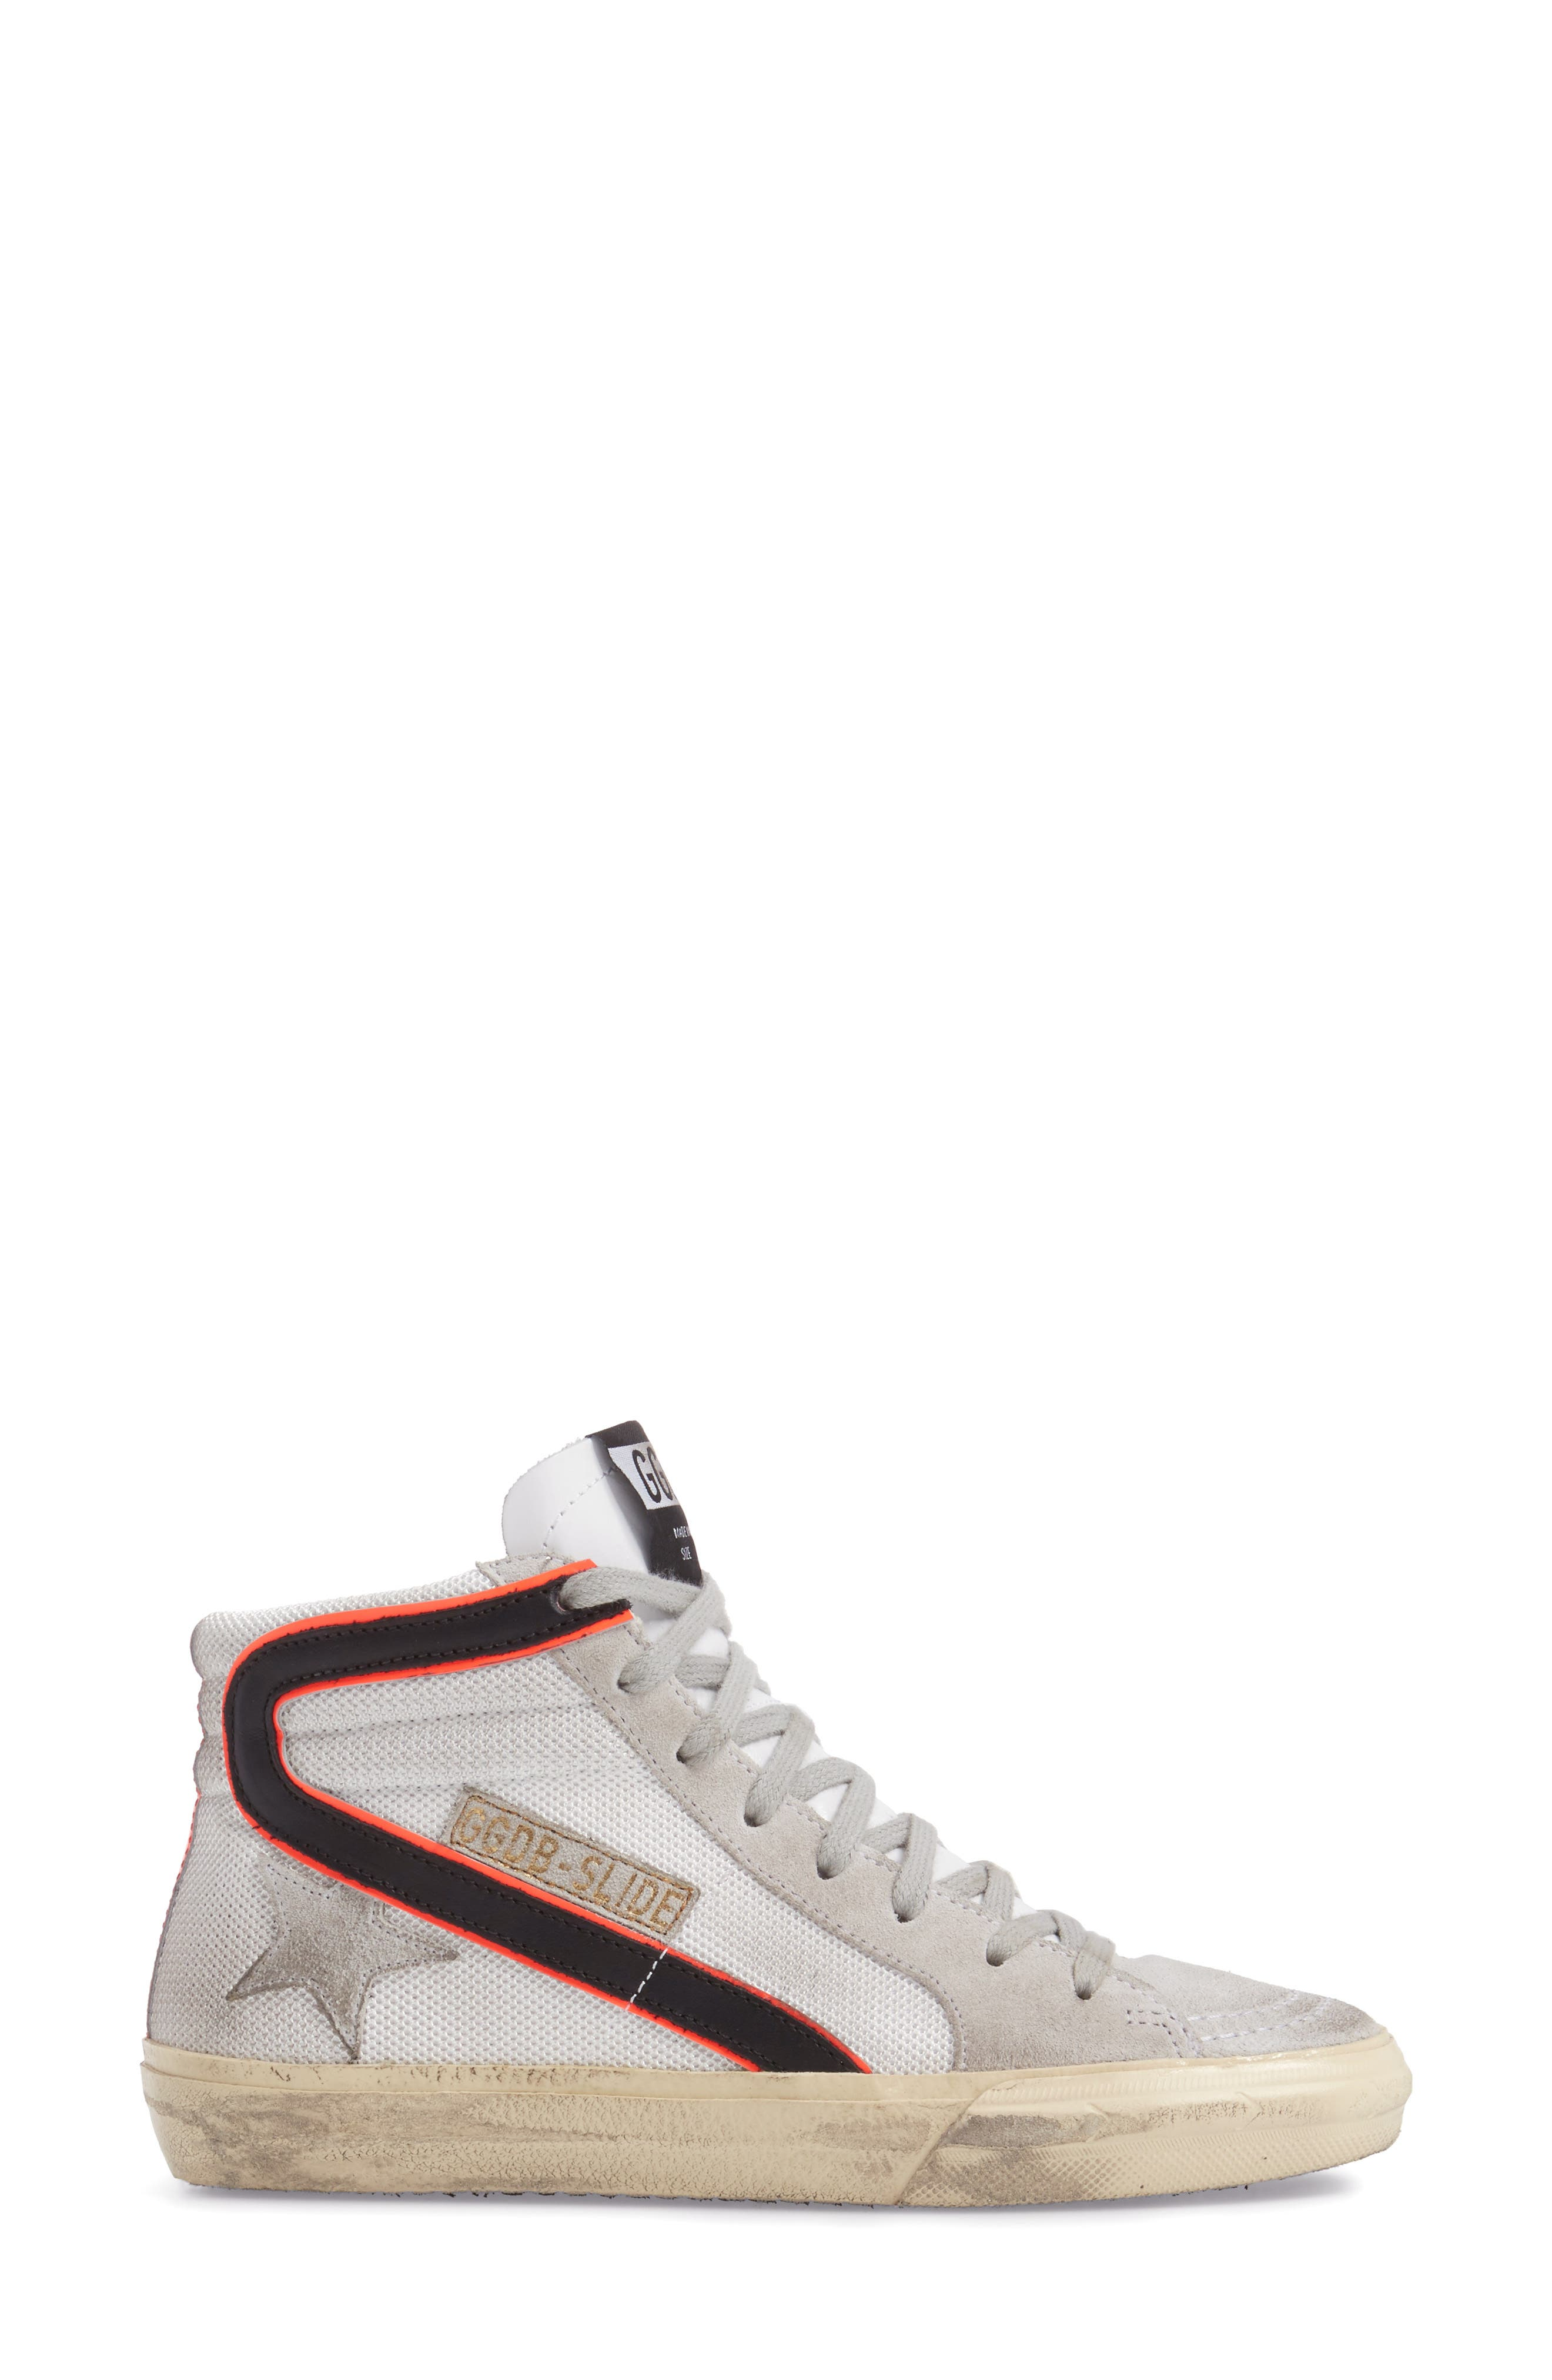 Slide High Top Sneaker,                             Alternate thumbnail 3, color,                             100